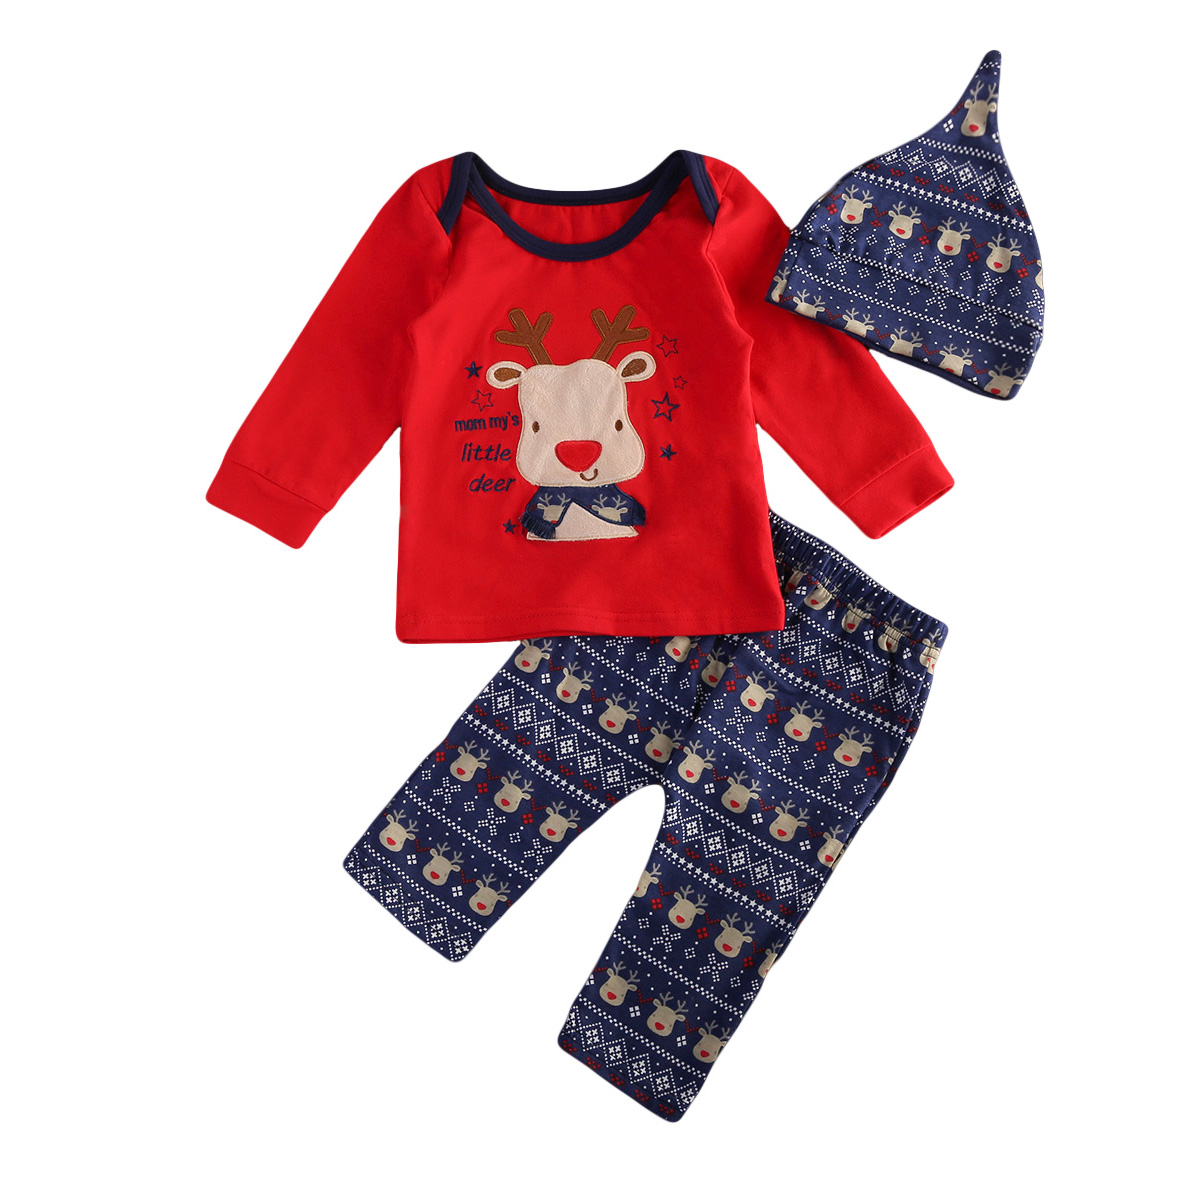 Canis 2017 Newborn Baby Boy Girl Bear Autumn Clothes Red T ...